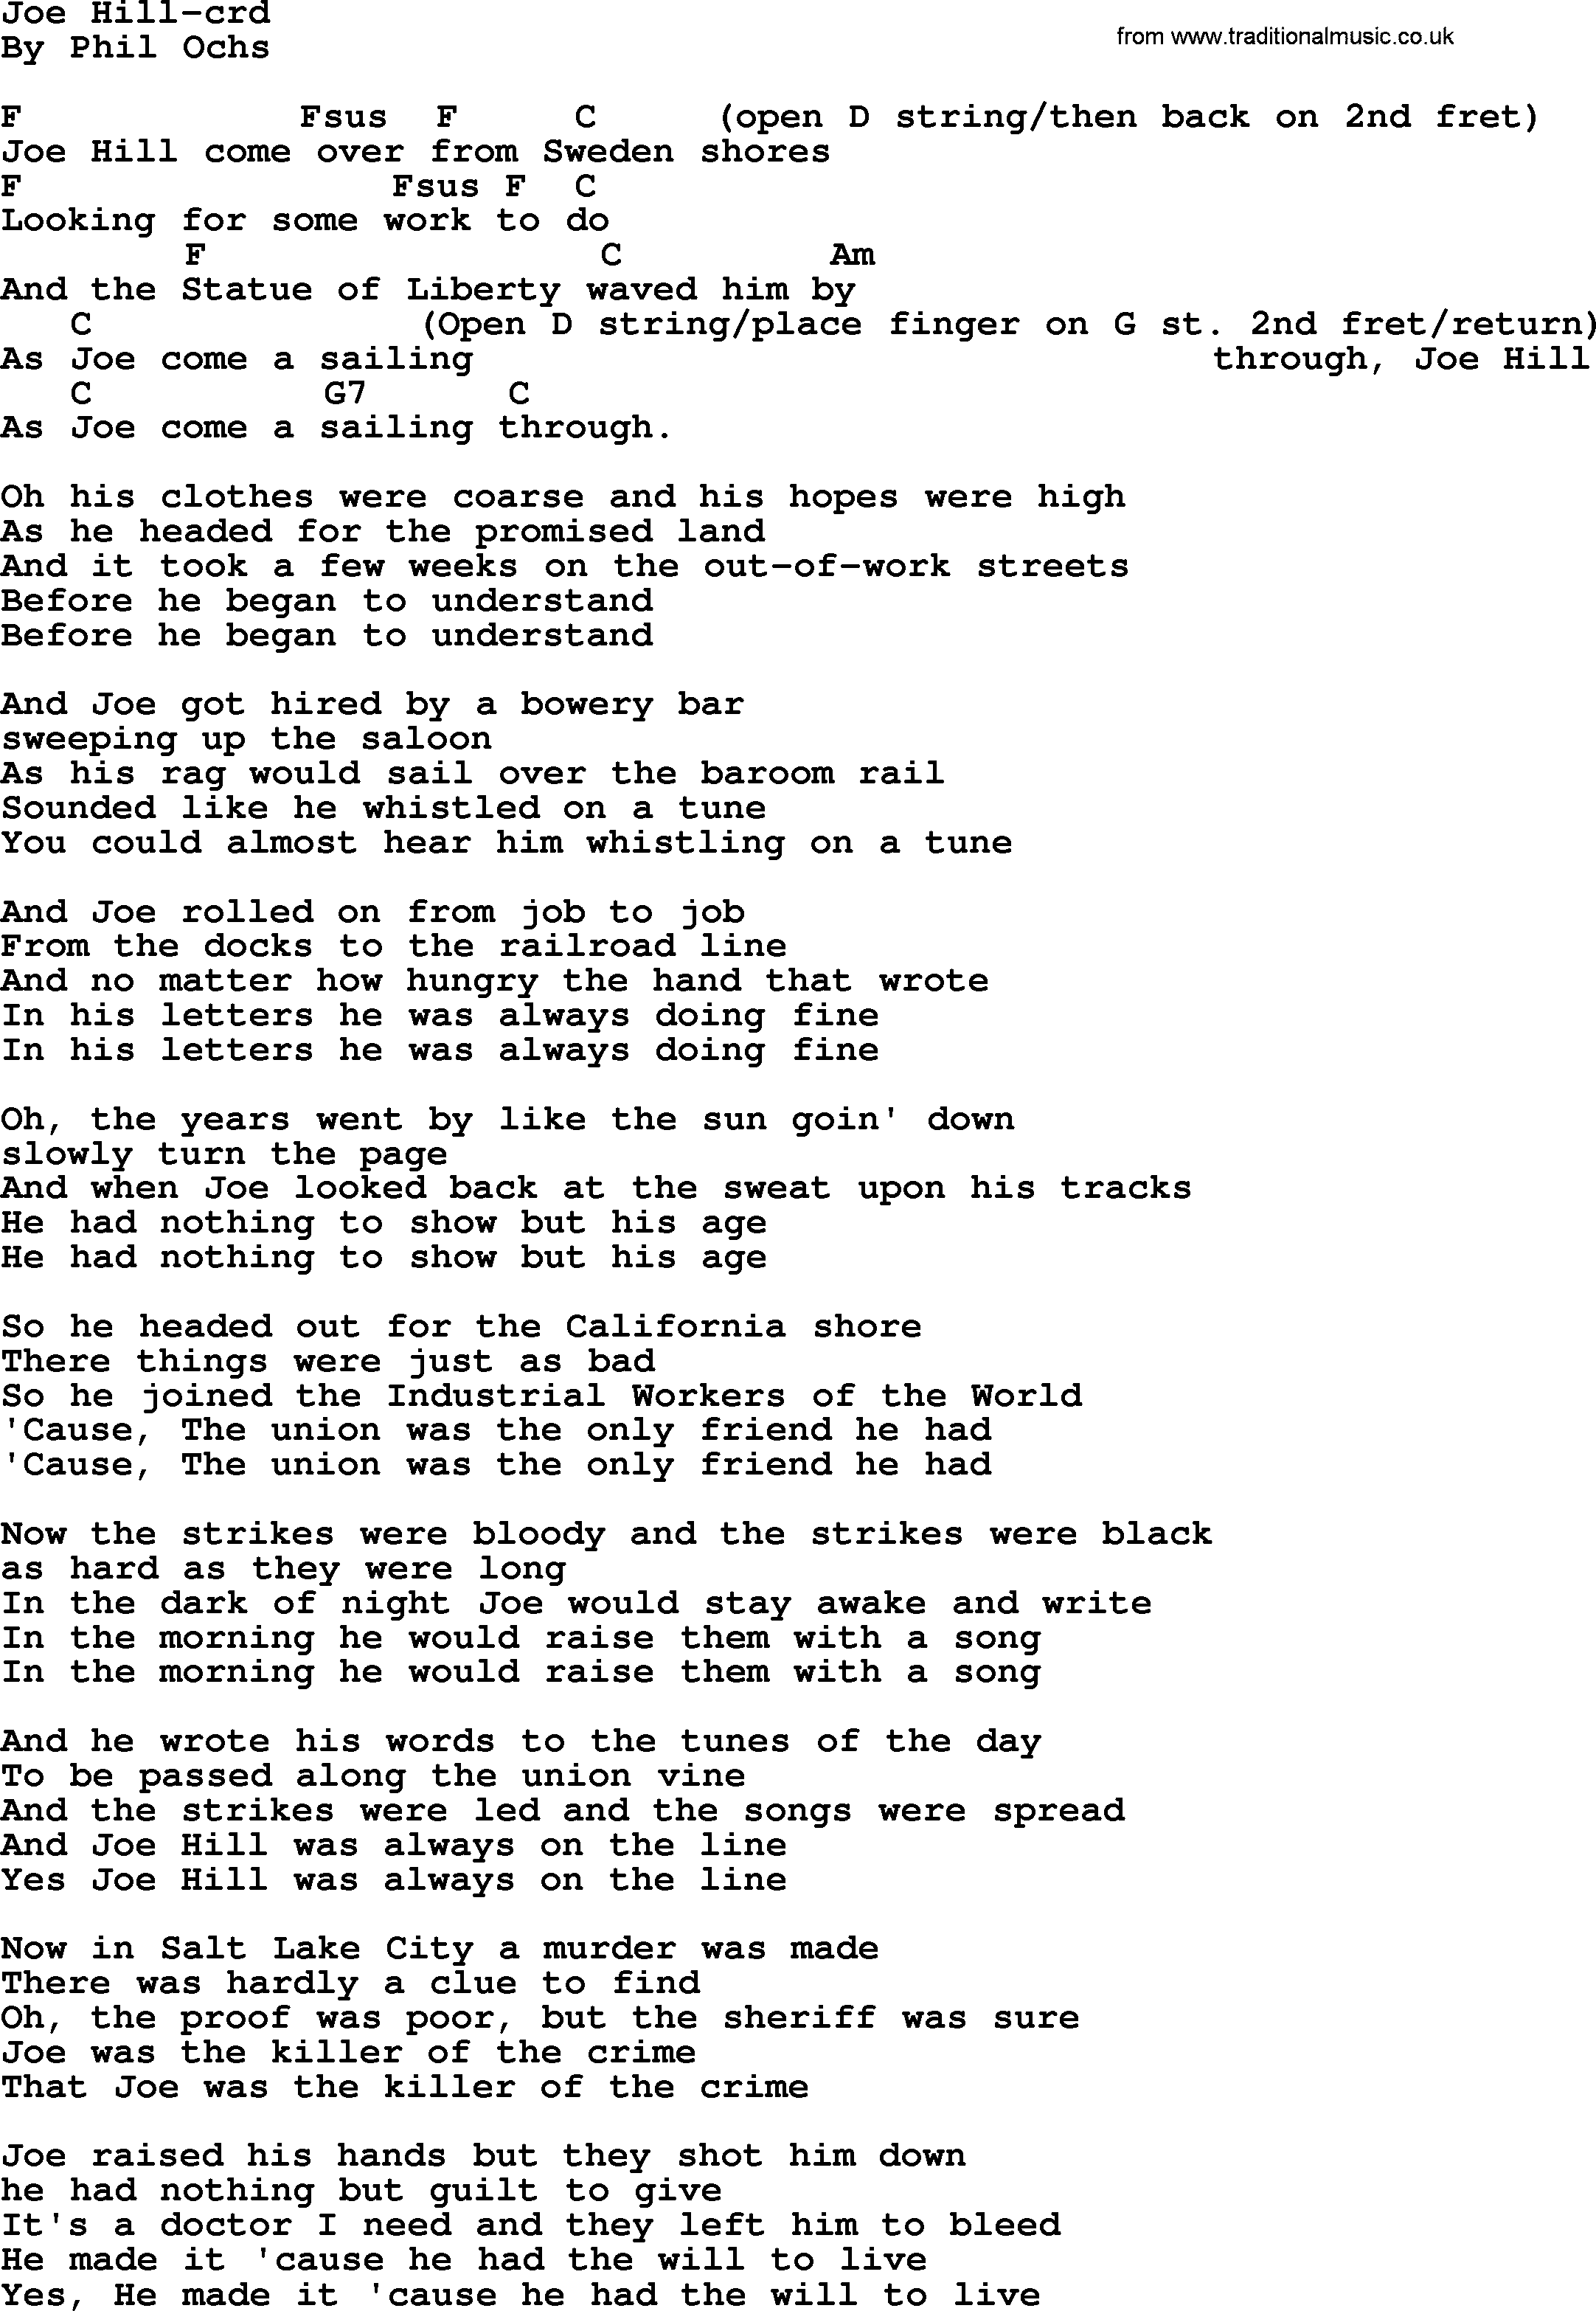 Phil Ochs Song Joe Hill By Phil Ochs Lyrics And Chords Phil Ochs